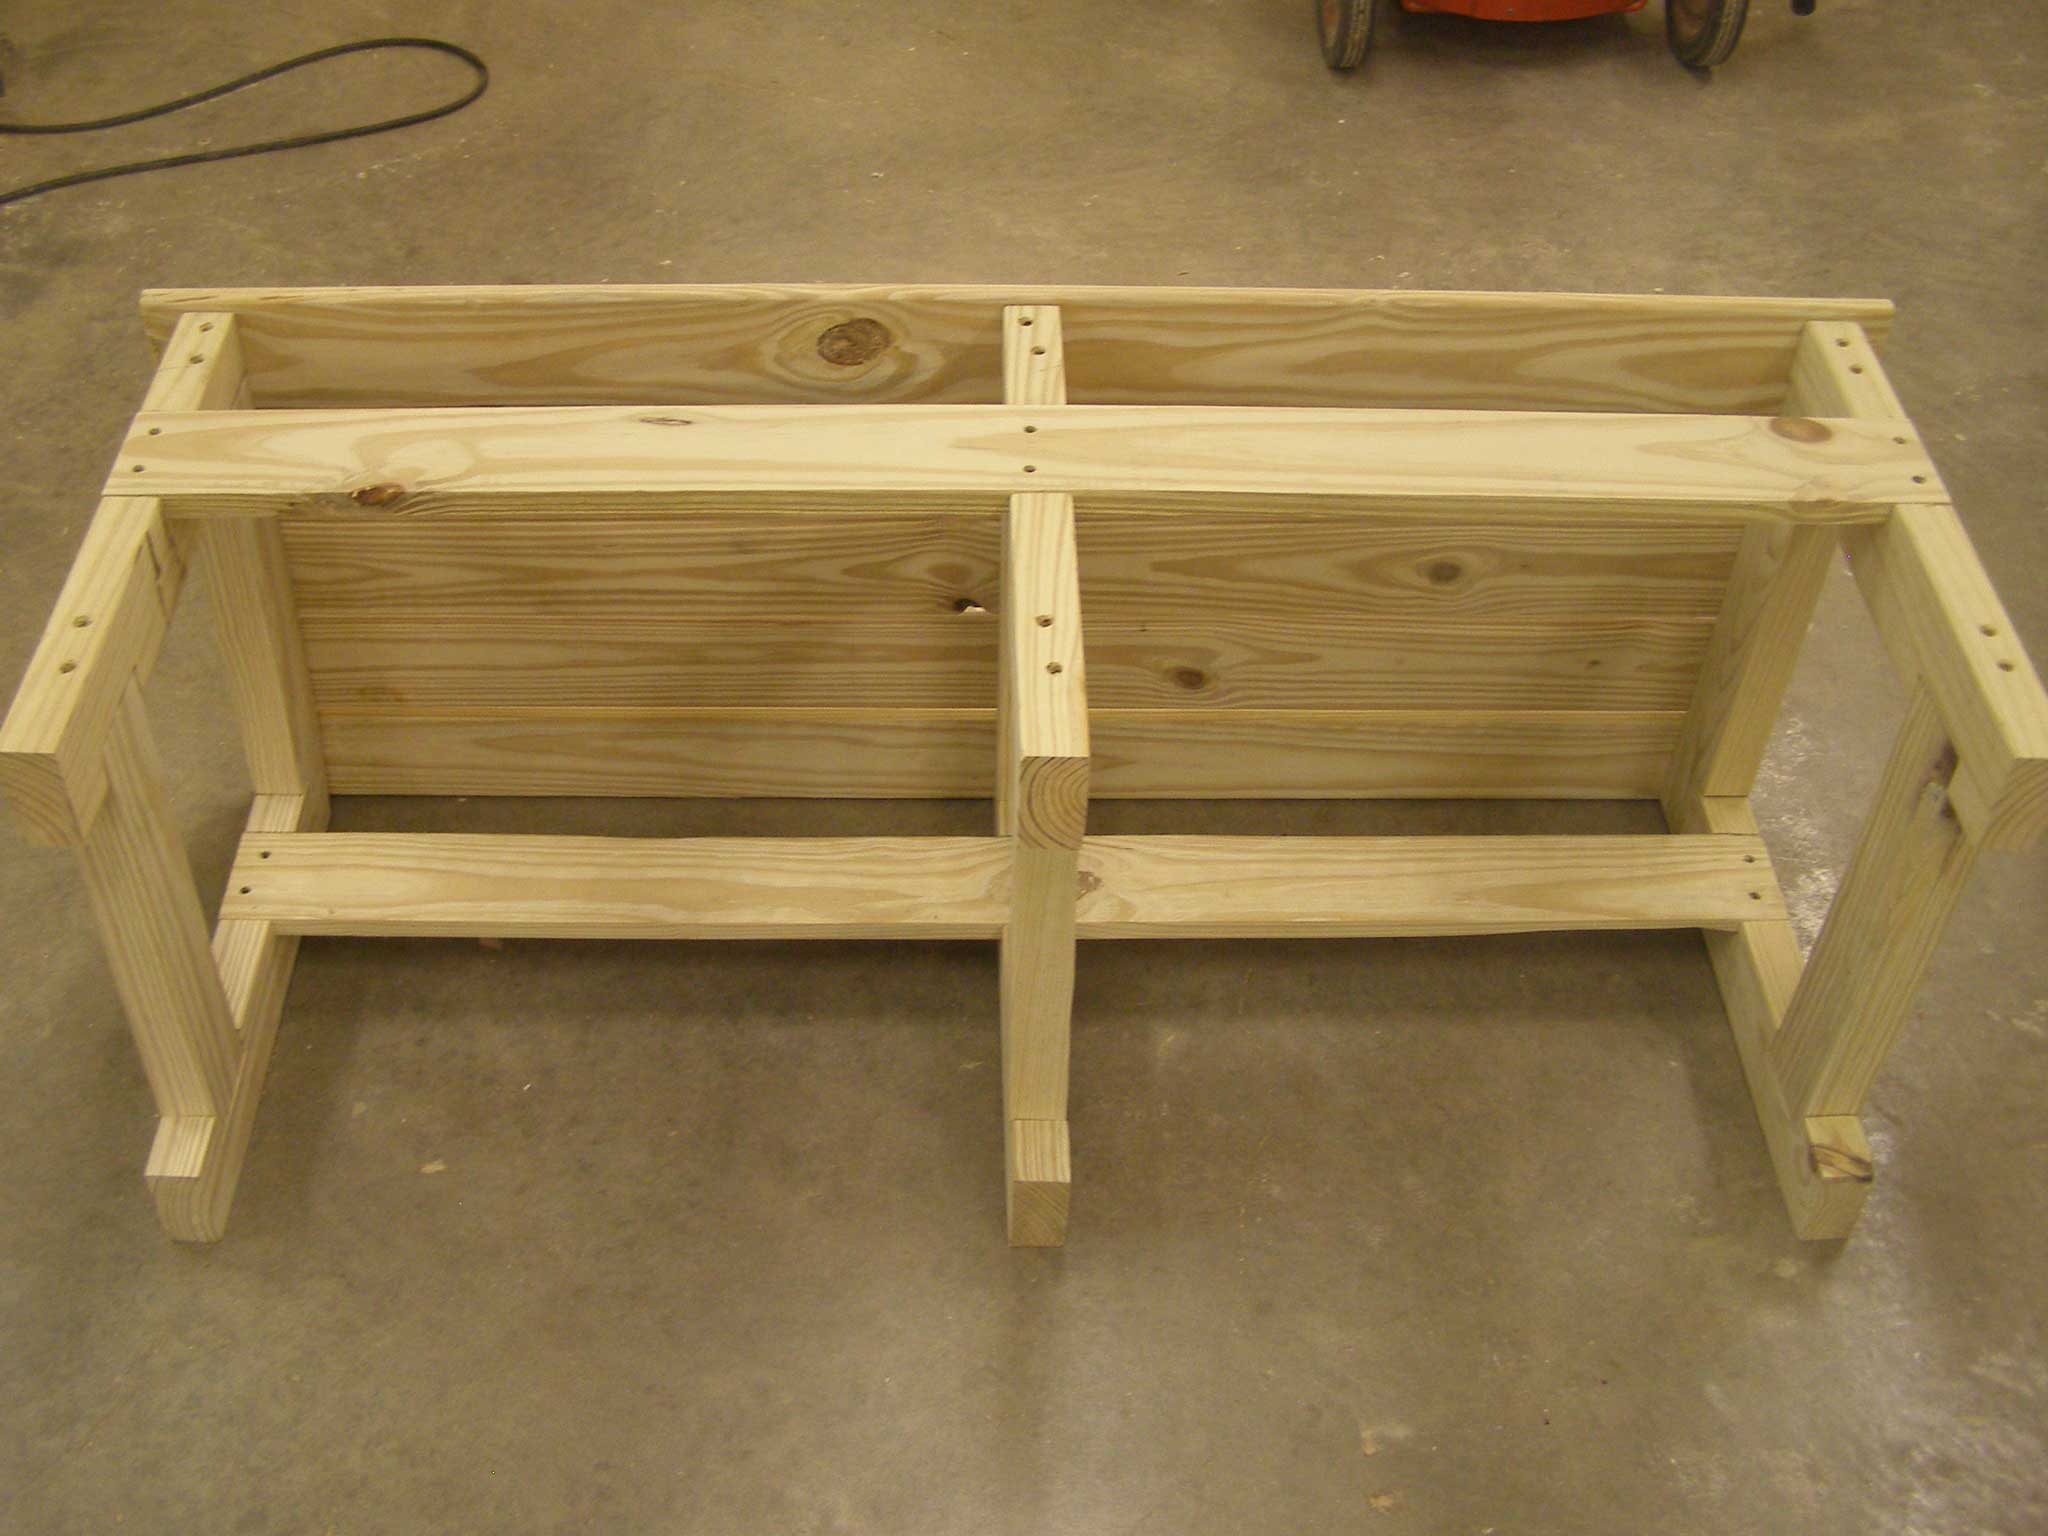 finished bench, bottom view